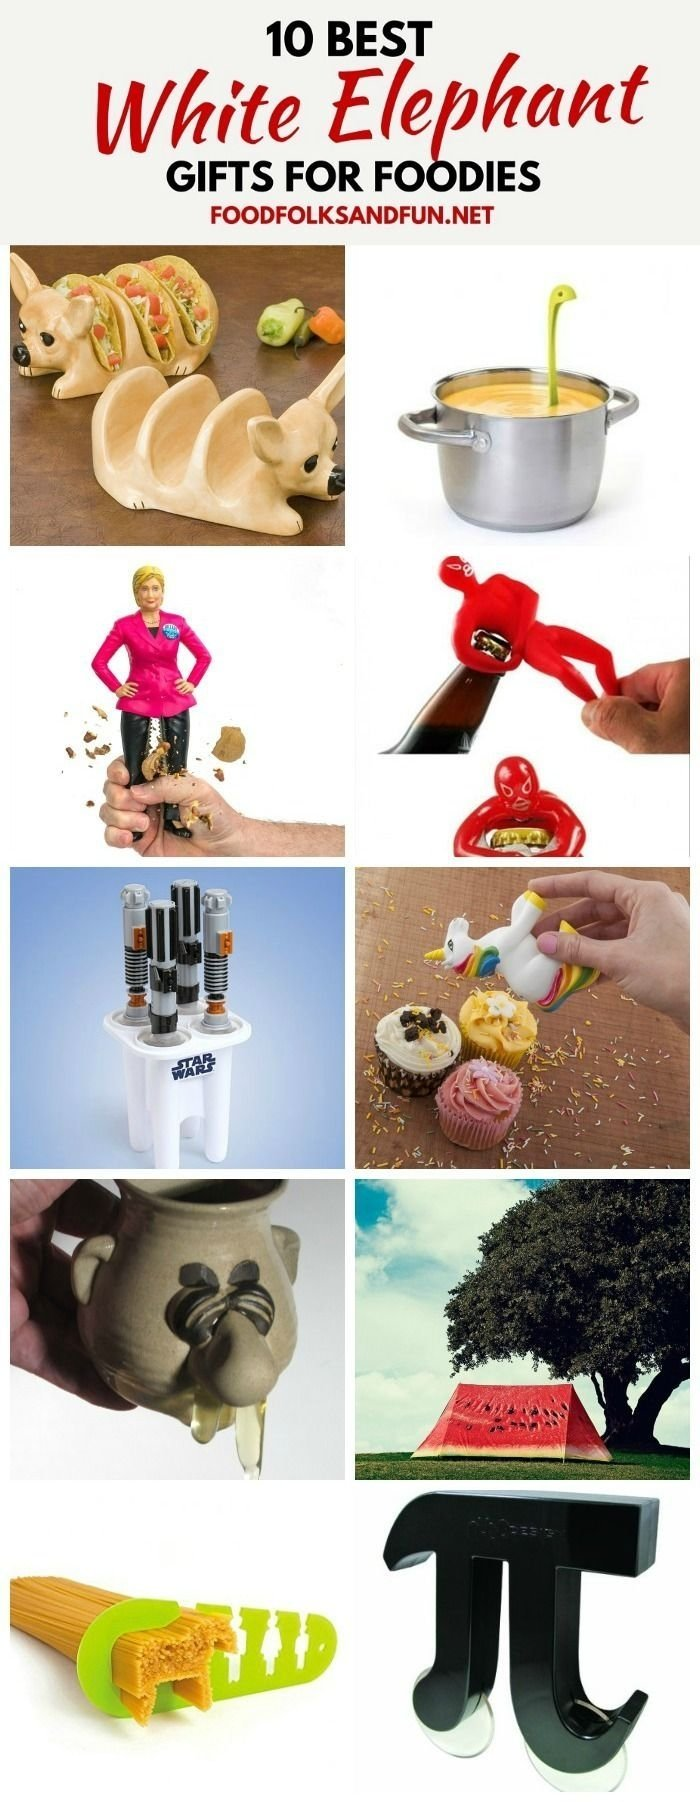 10 Stylish Ideas For Yankee Swap Gifts 28 cheap white elephant gift ideas under 15 white elephant gift 2021